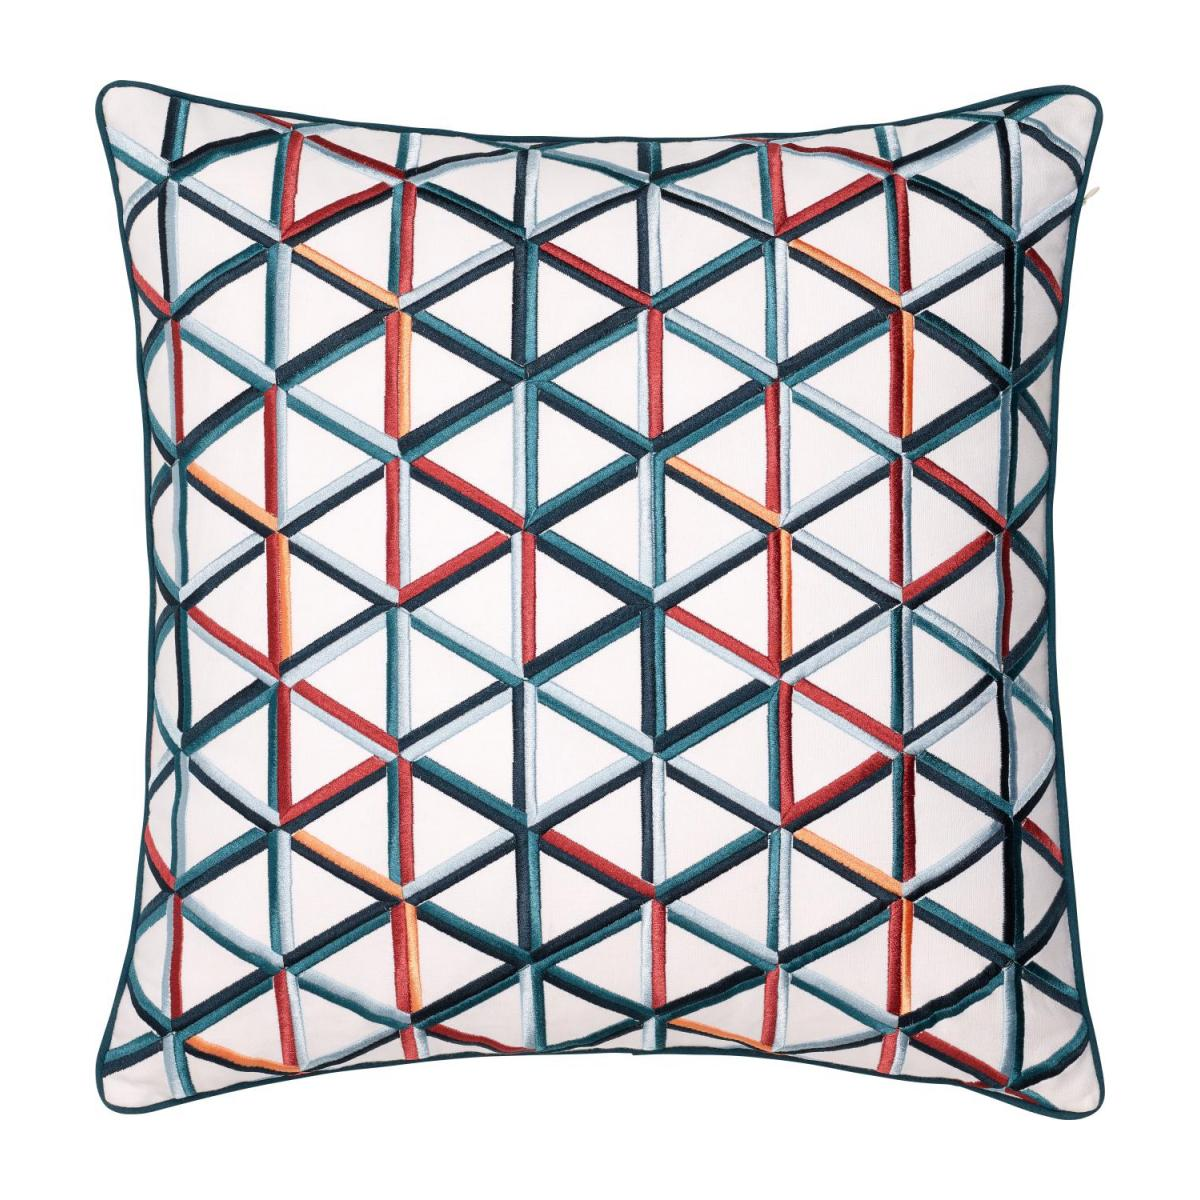 Coussin 45 x 45 cm - Multicolore - design by Floriane Jacques n°1